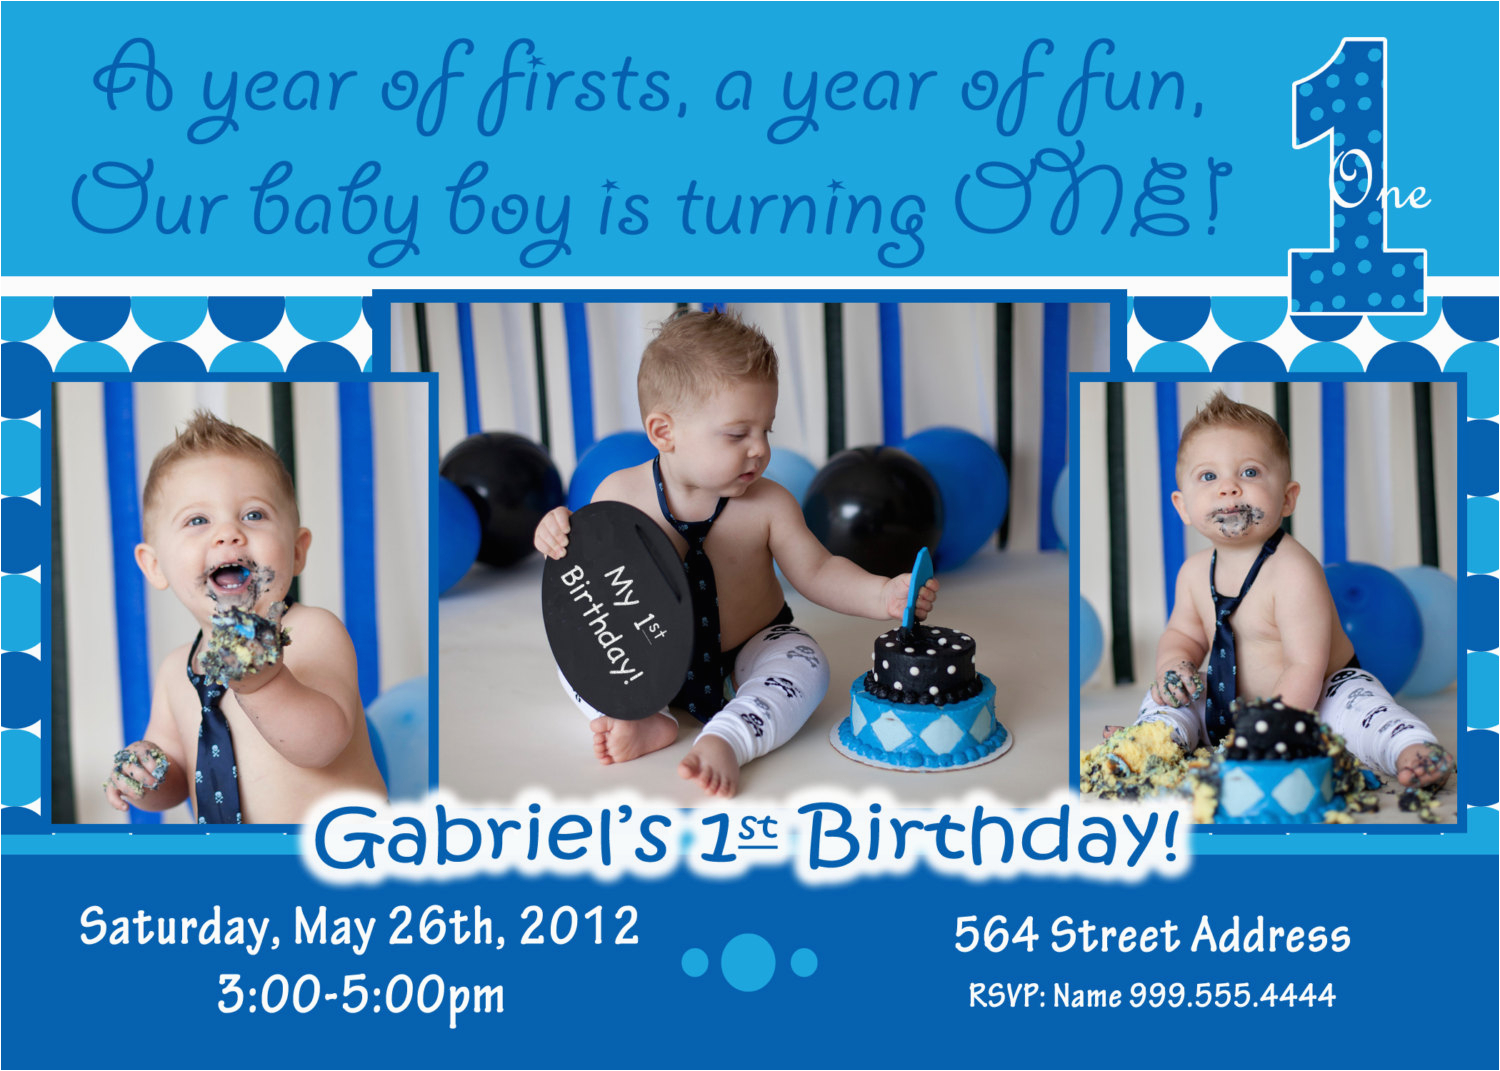 1st Birthday Invitation Ideas For A Boy Baby Invitations Free Printable